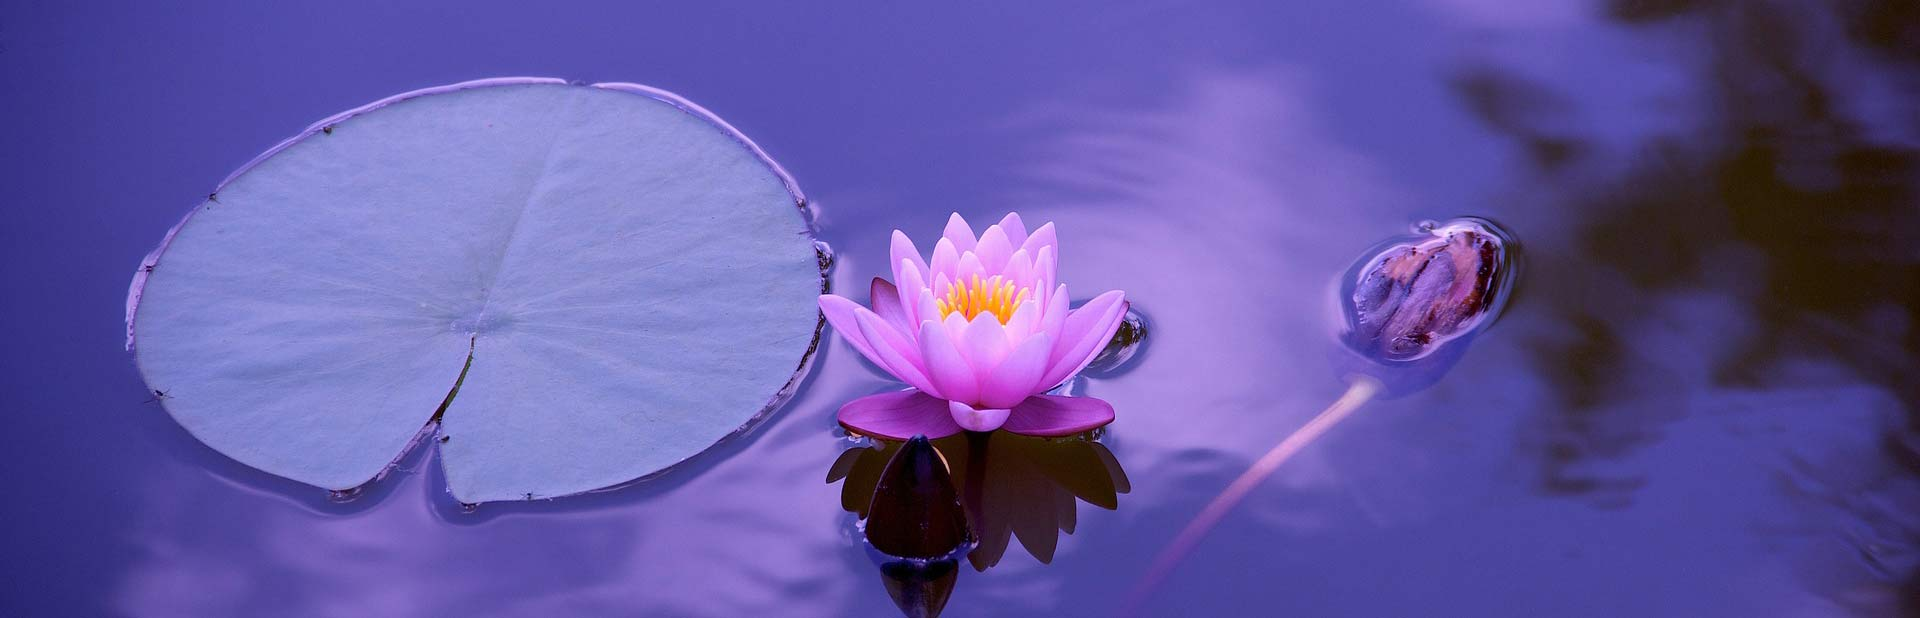 water-lilly-1205631_1920-crop